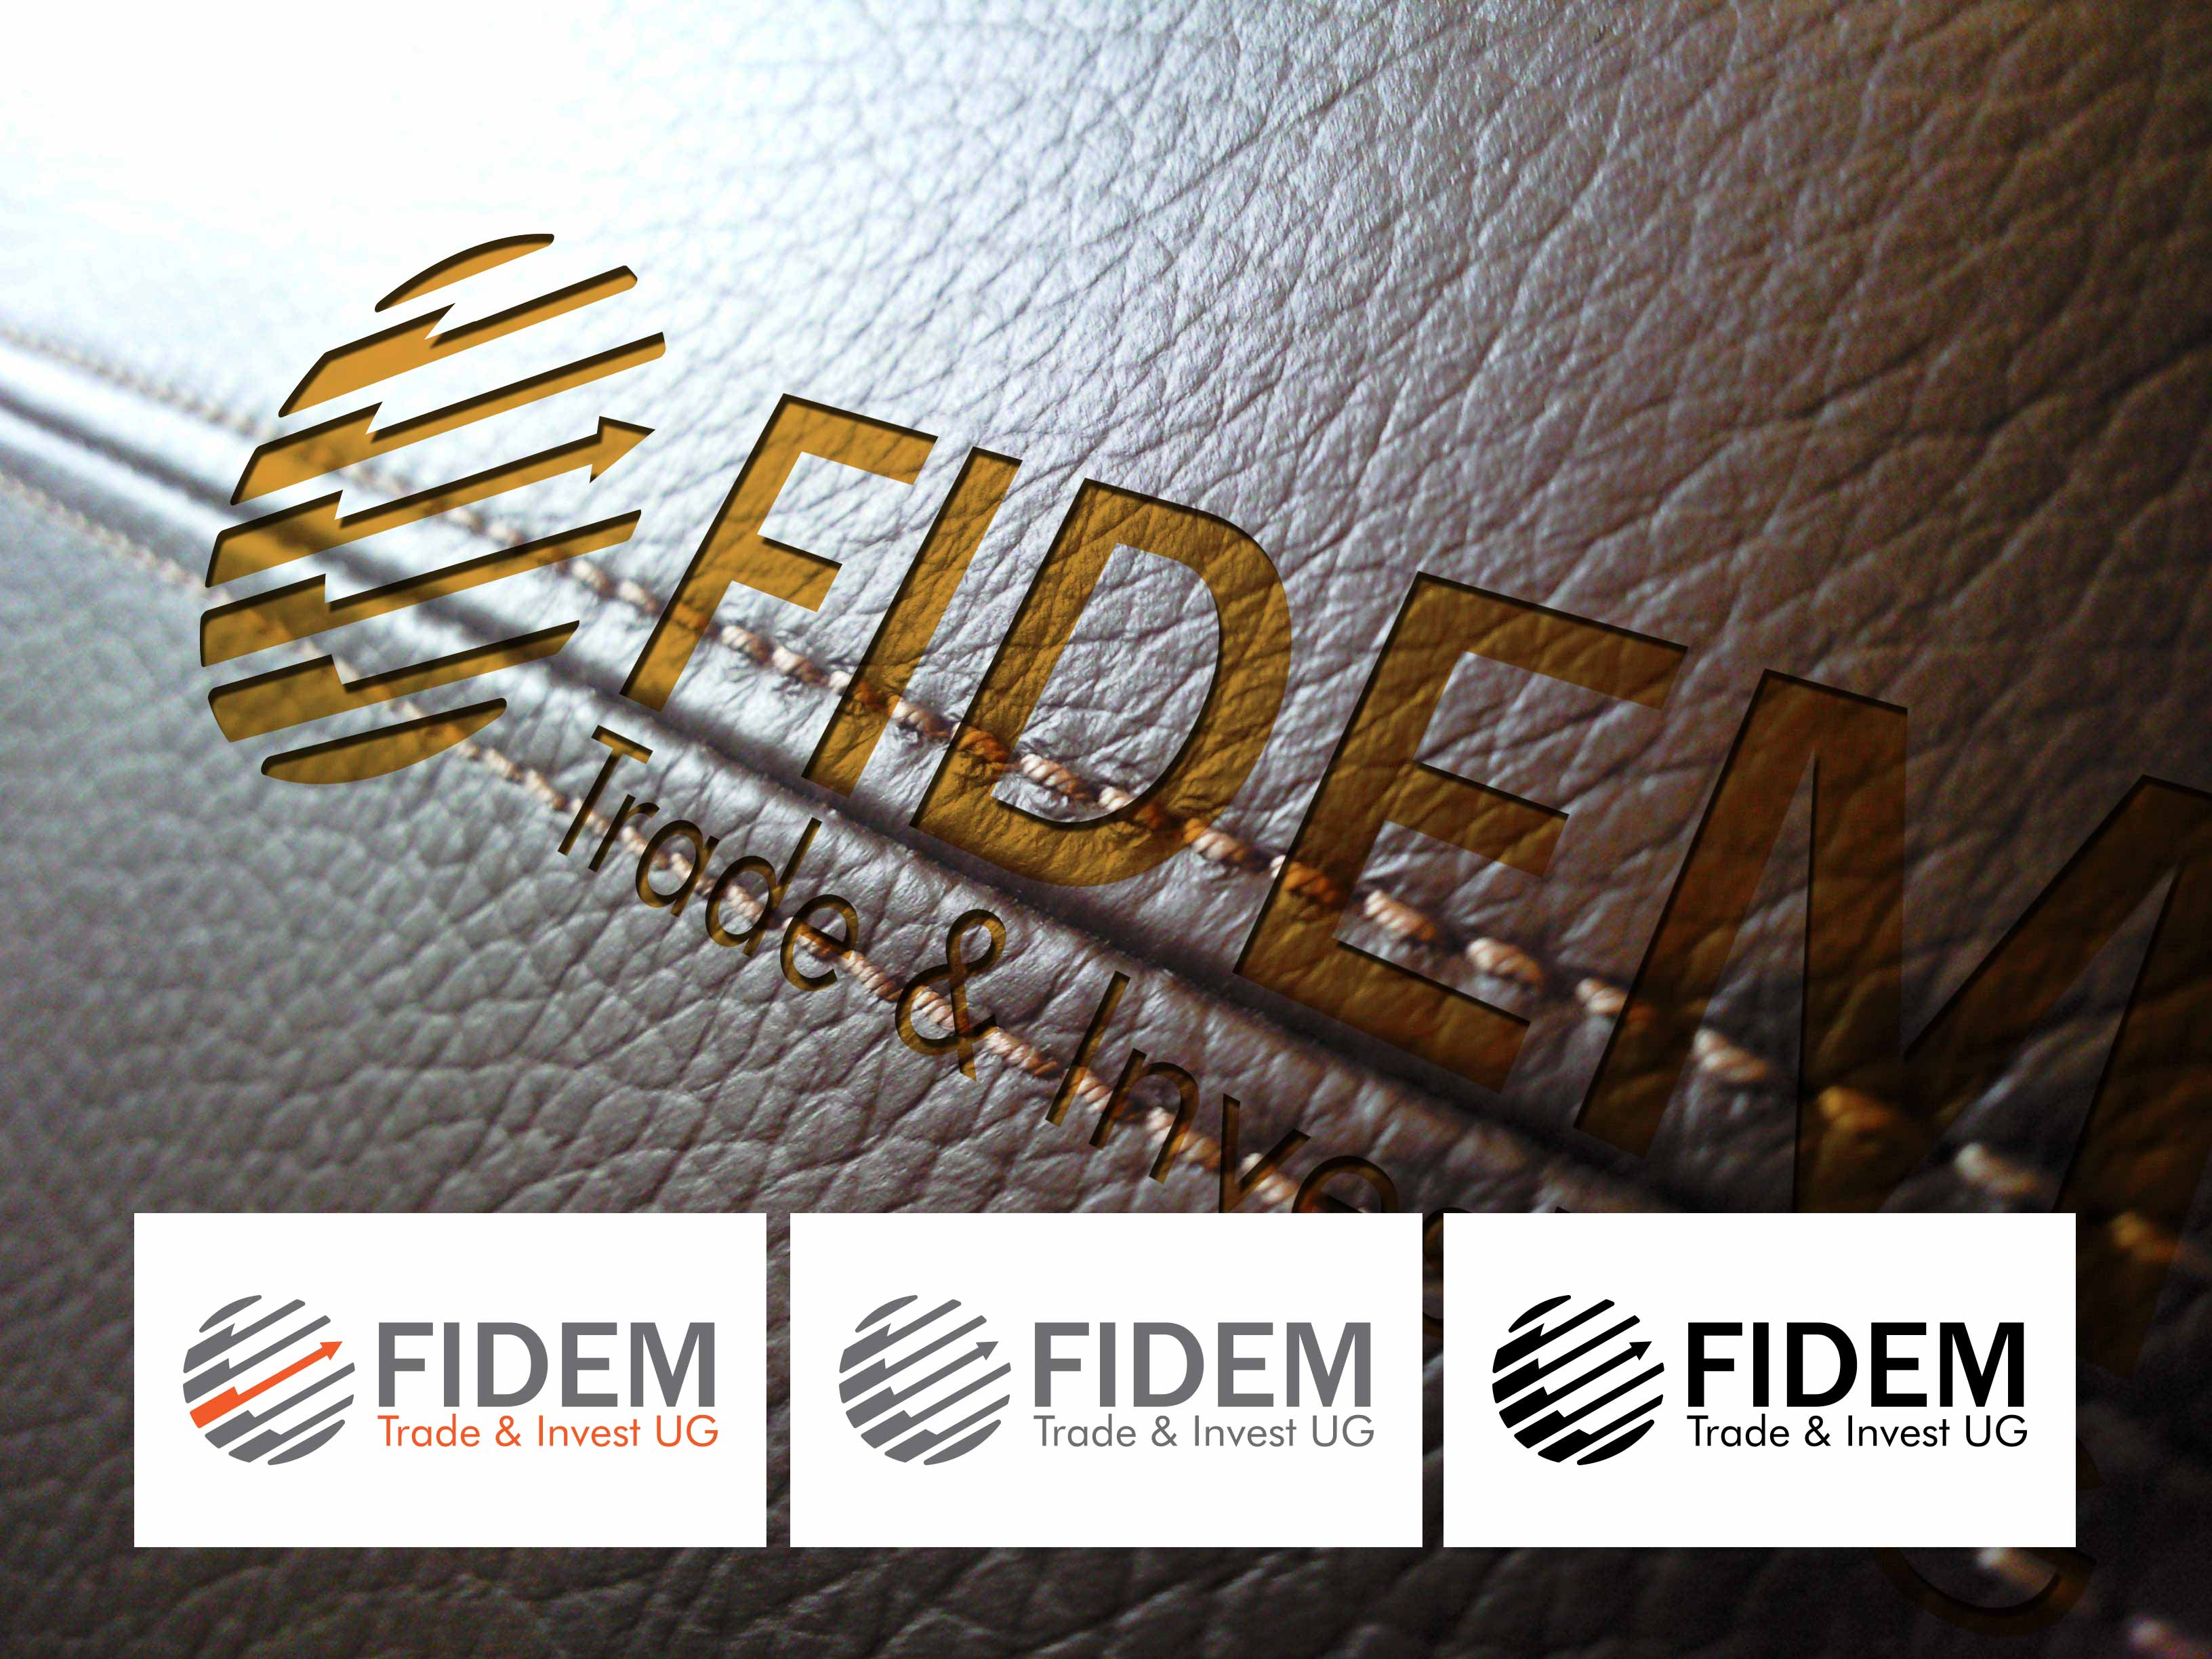 Logo Design by lagalag - Entry No. 319 in the Logo Design Contest Professional Logo Design for FIDEM Trade & Invest UG.